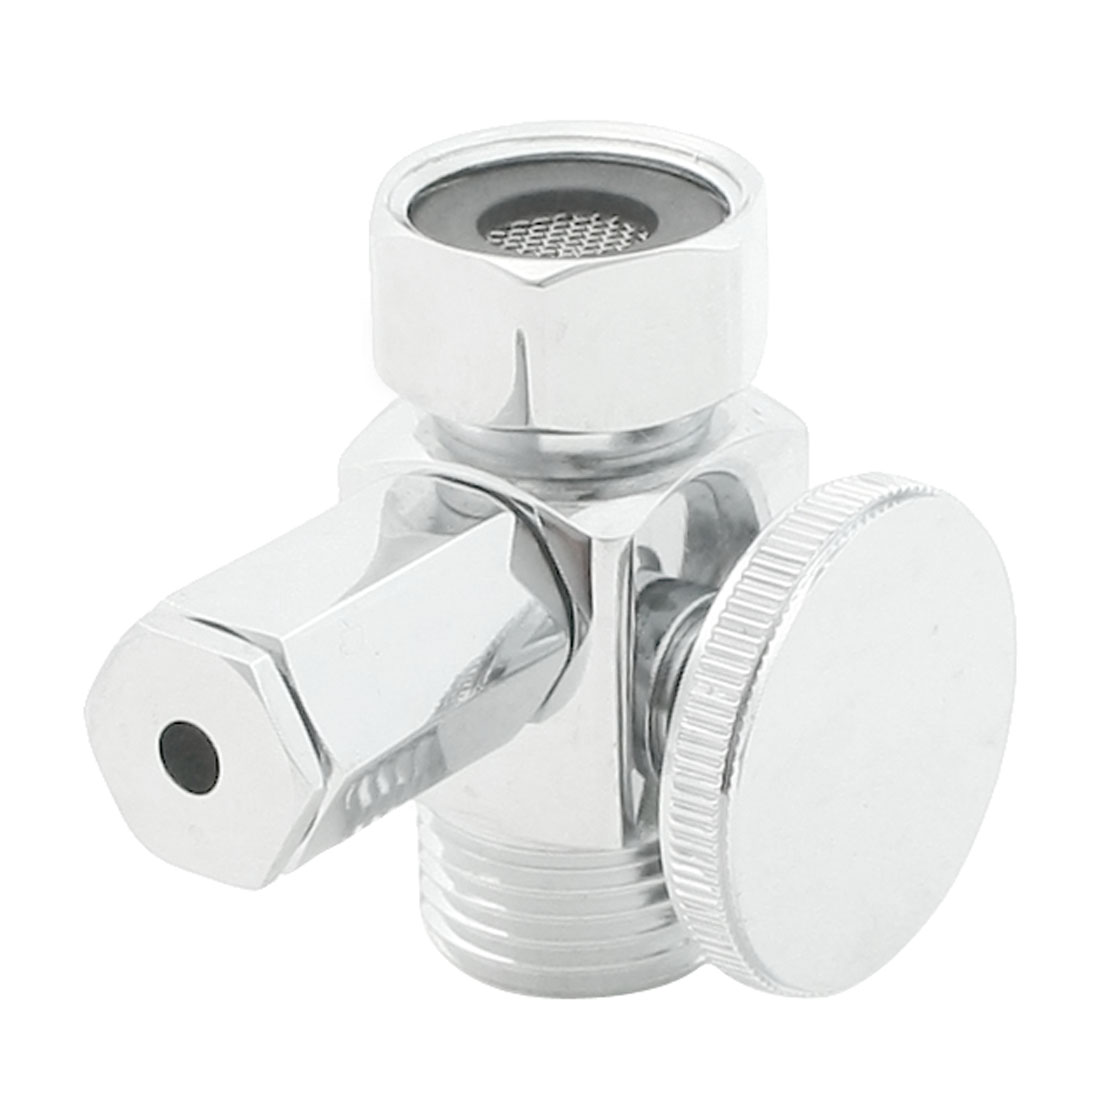 Fliter Mesh 3 Way Adjustable Hot Water Temperature Control Valve